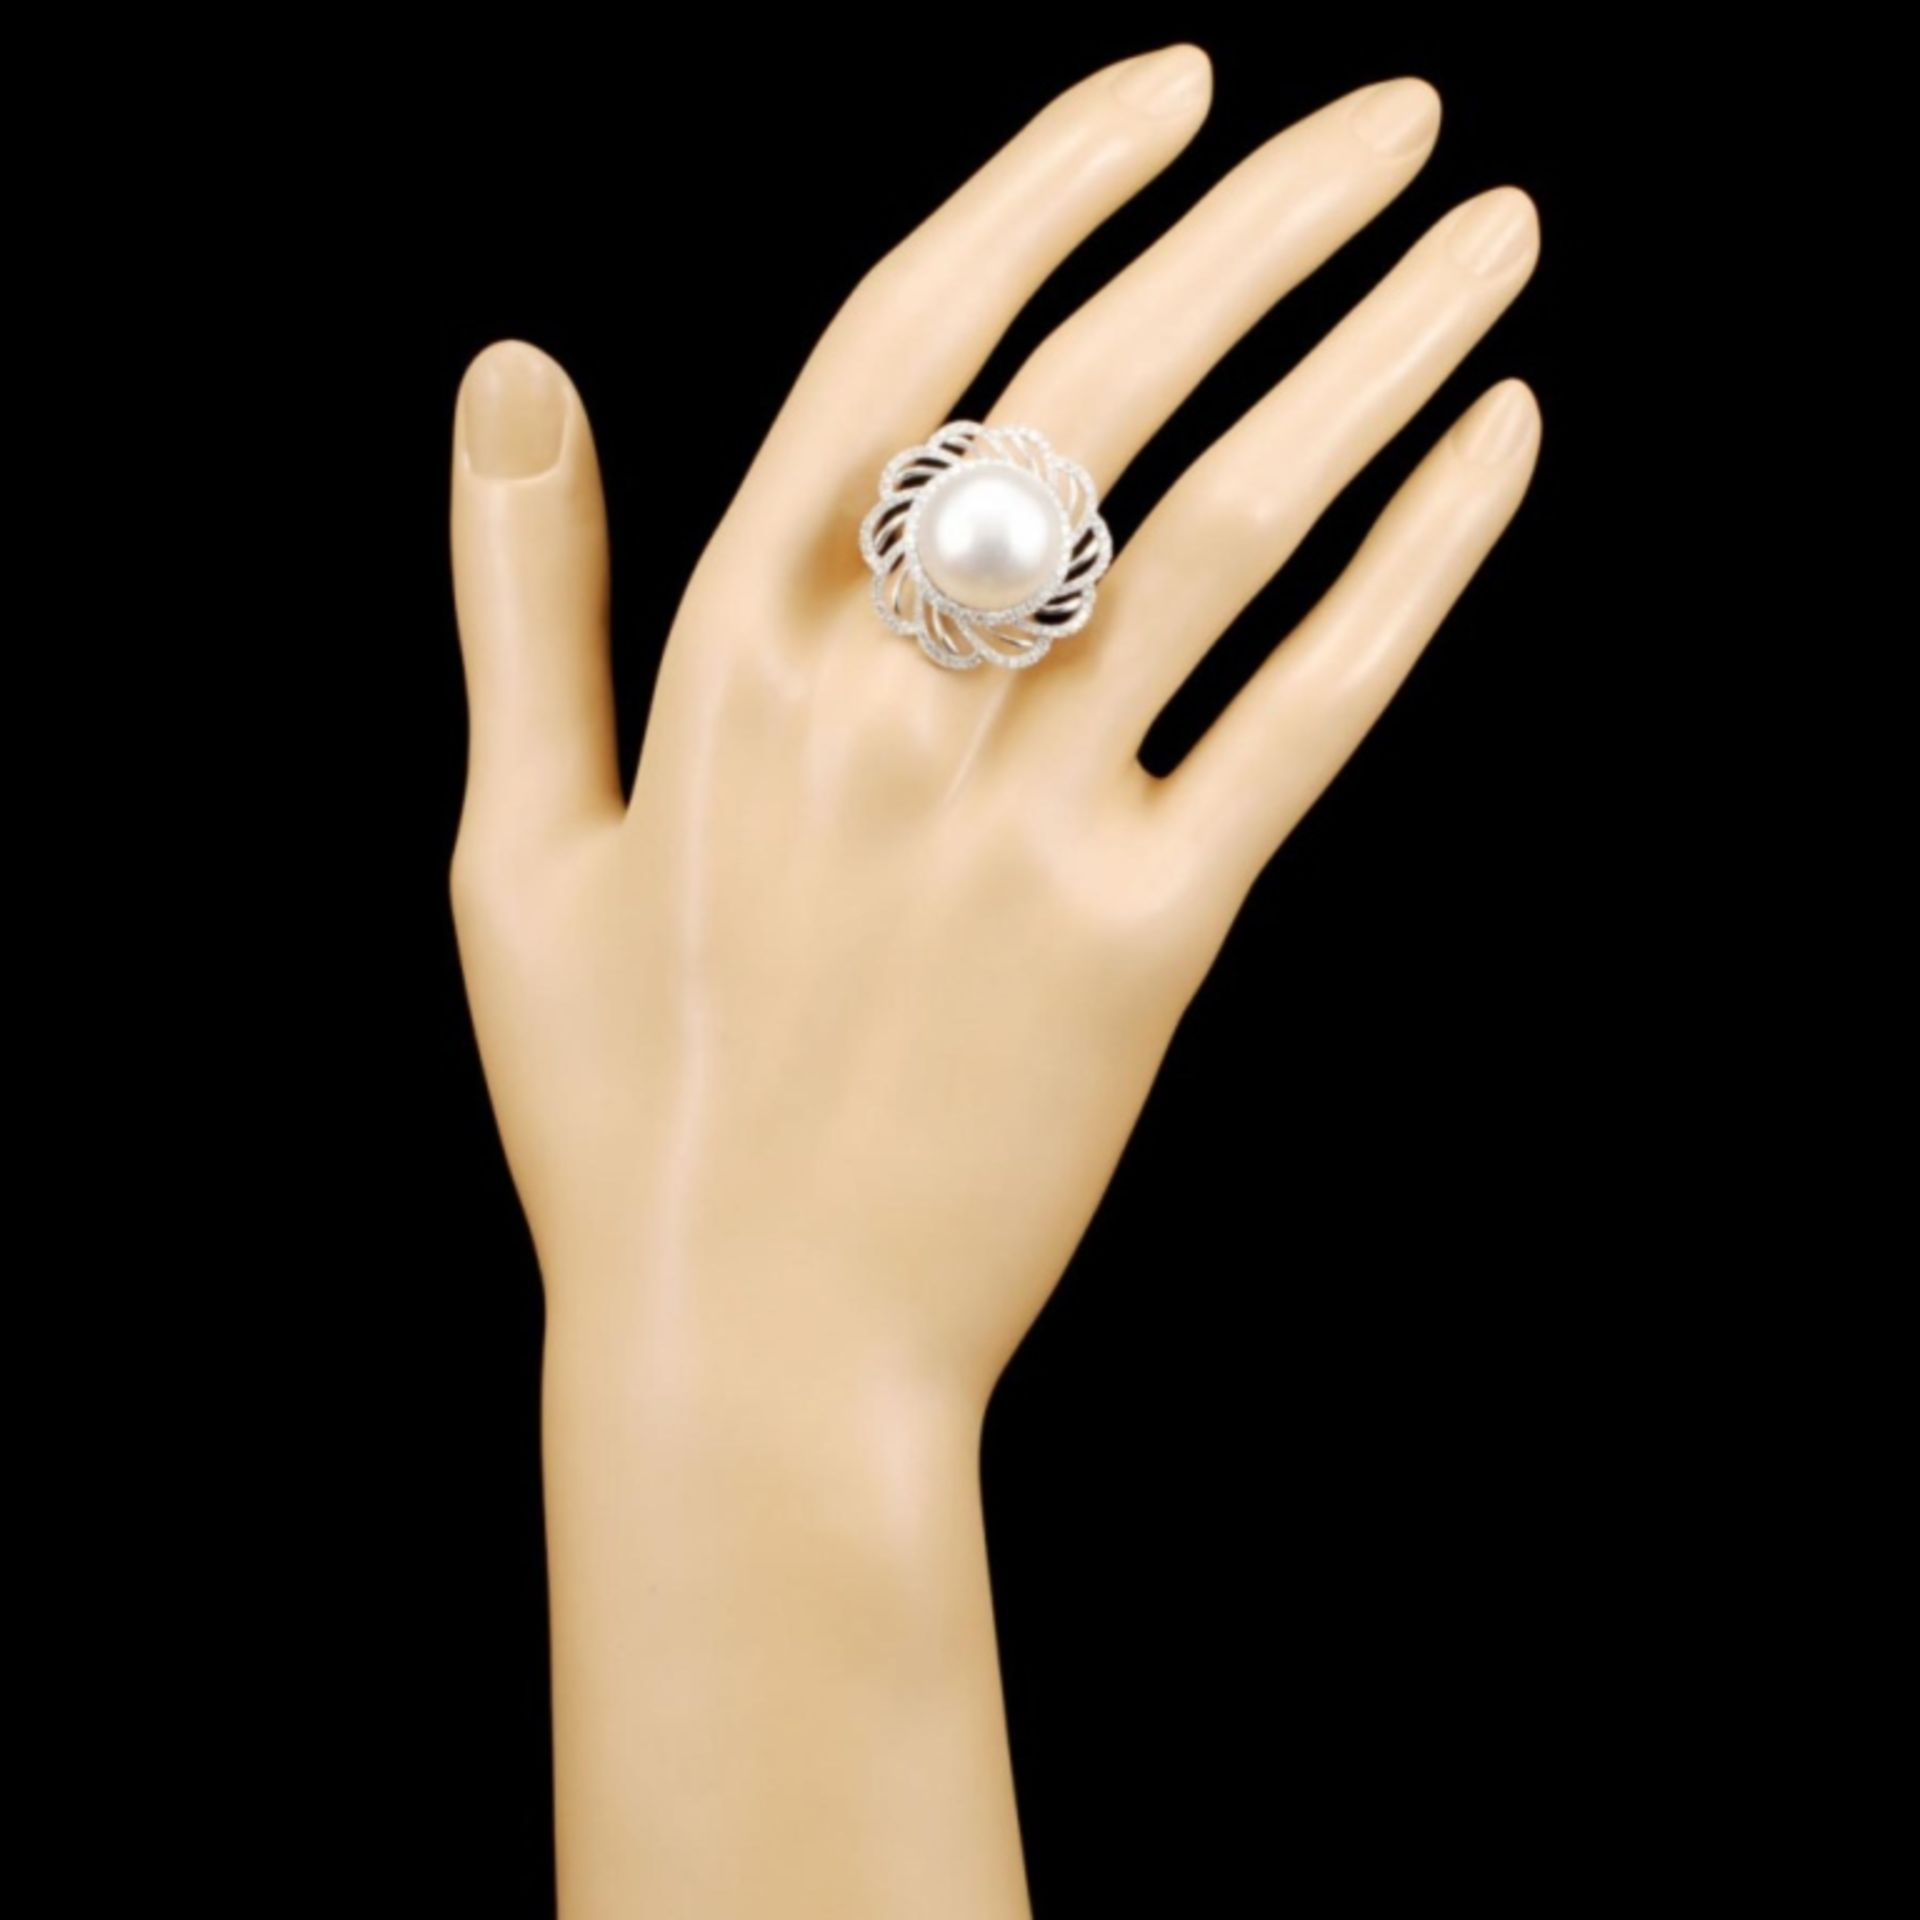 18K Gold 15.00MM Pearl & 1.02ctw Diamond Ring - Image 4 of 5